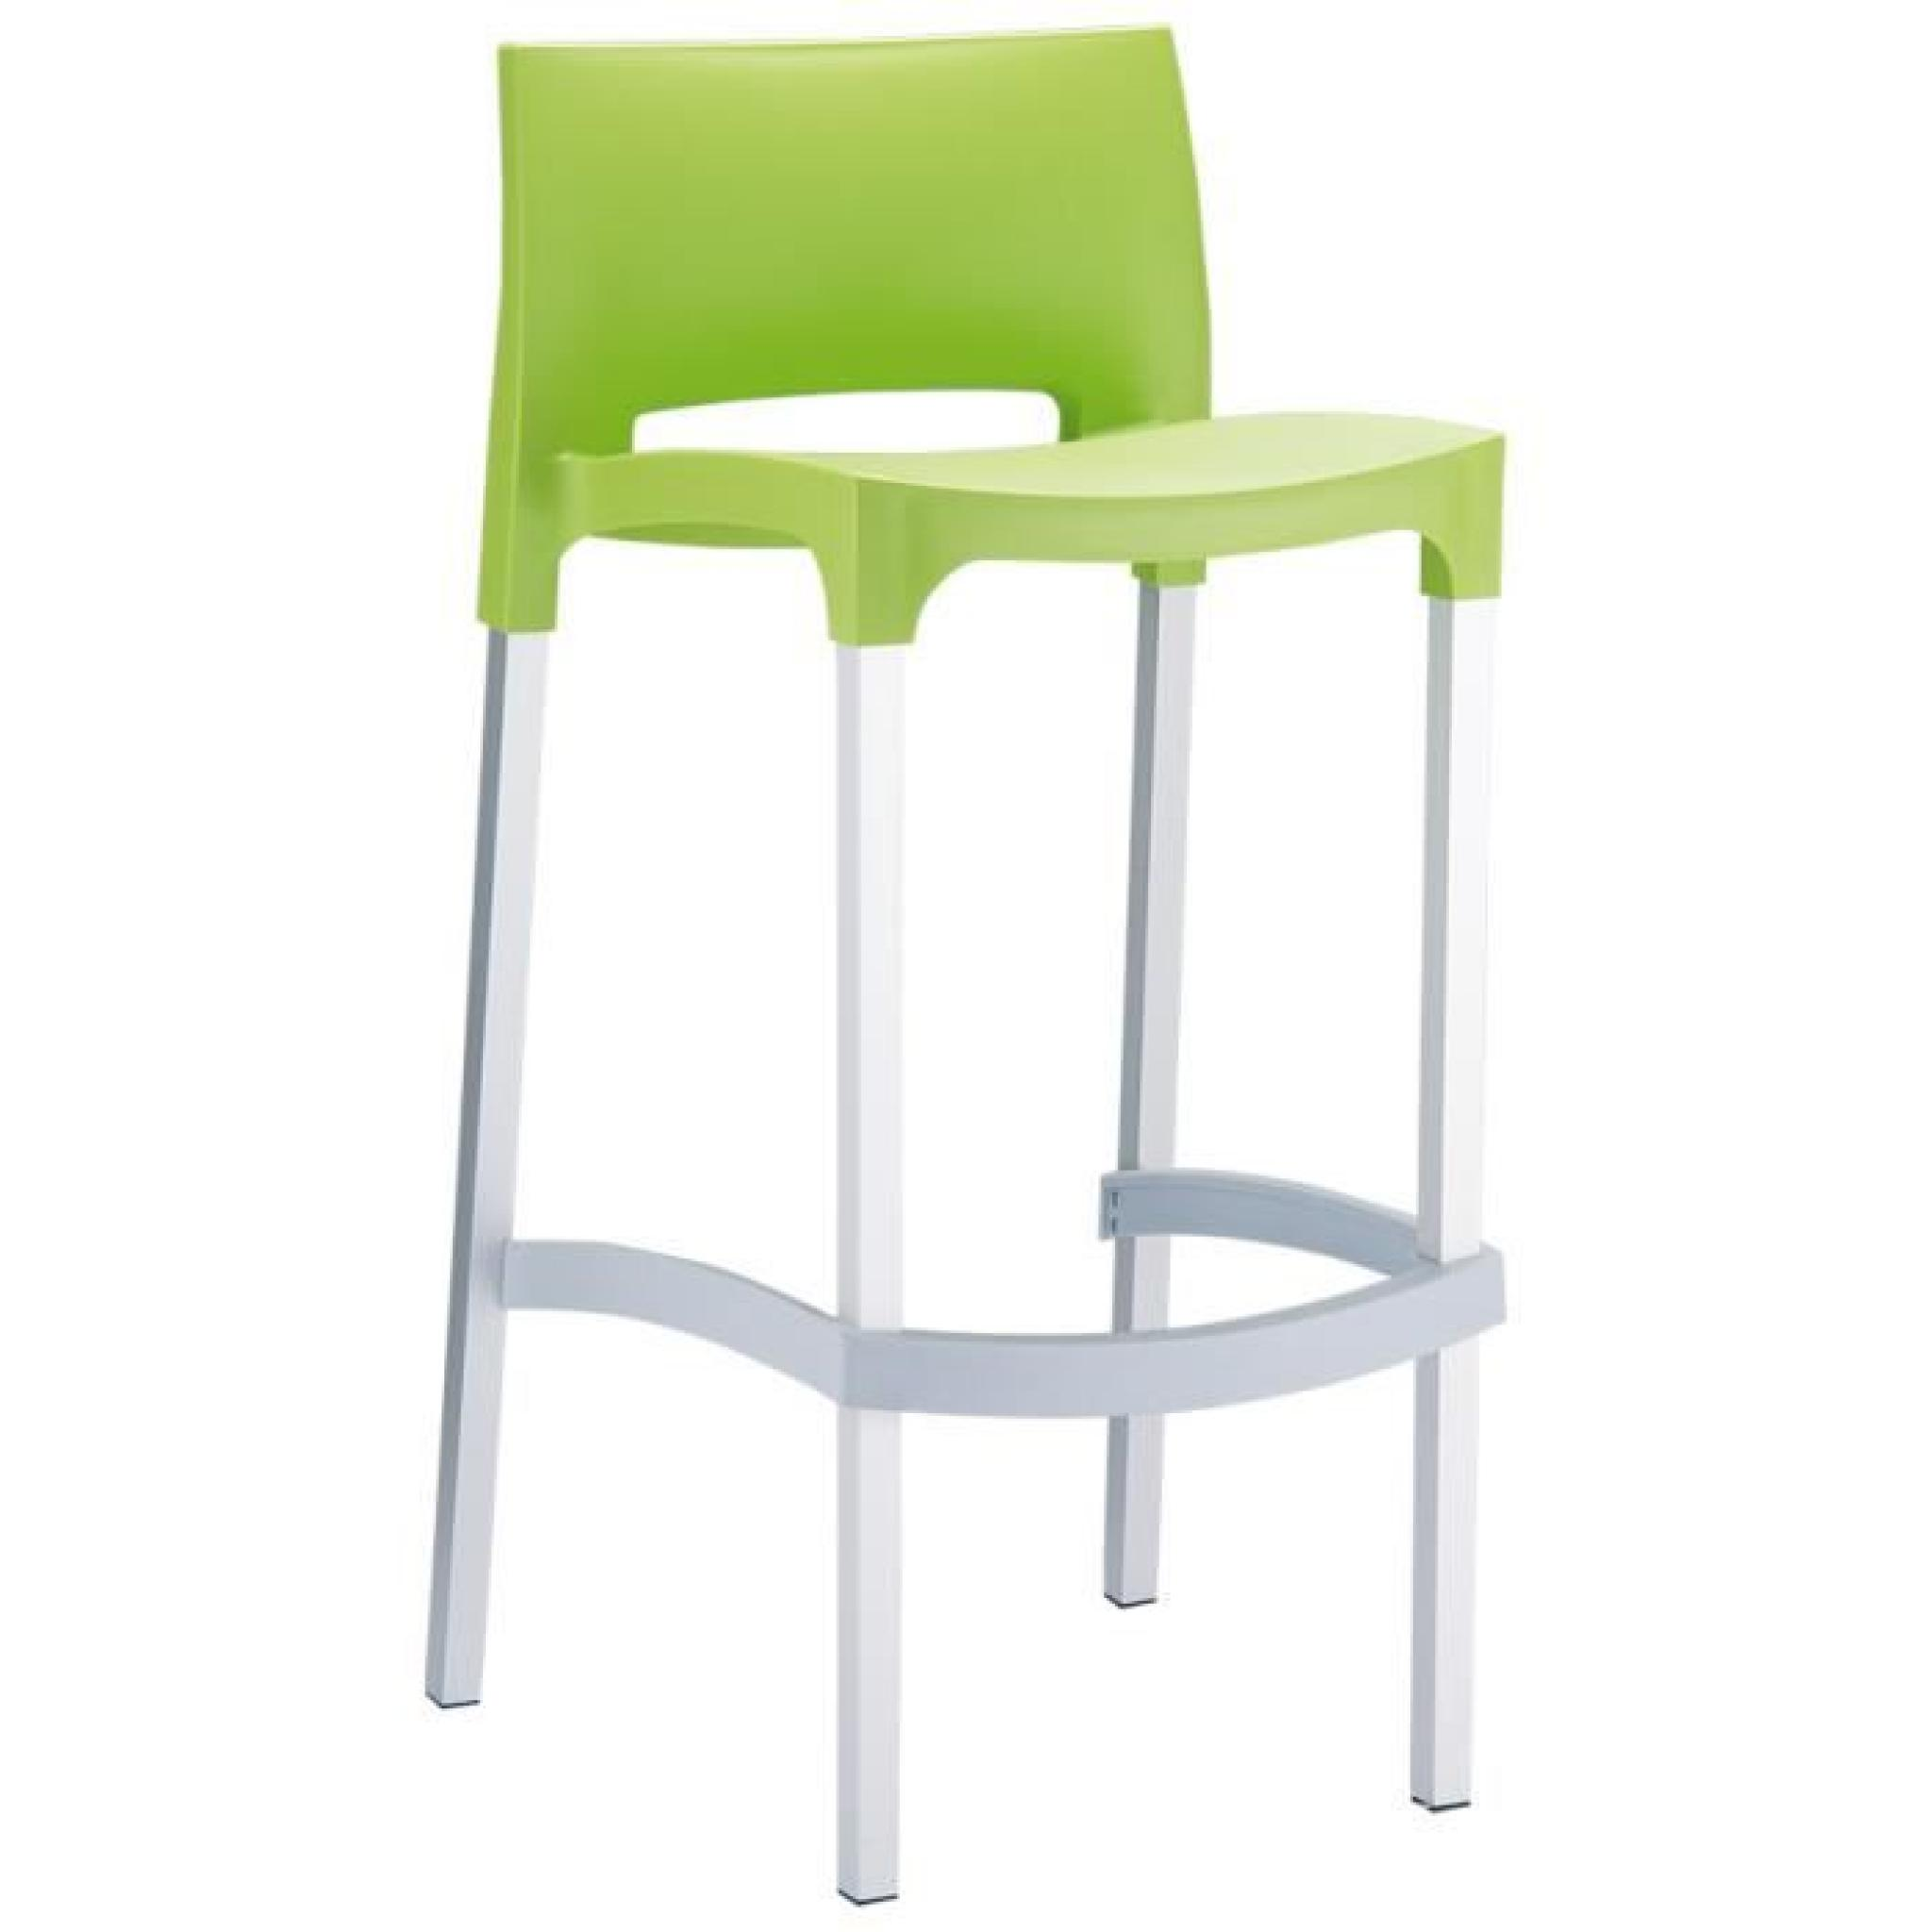 tabouret de bar 39 maty 39 vert avec dossier achat vente tabouret de bar pas cher couleur et. Black Bedroom Furniture Sets. Home Design Ideas